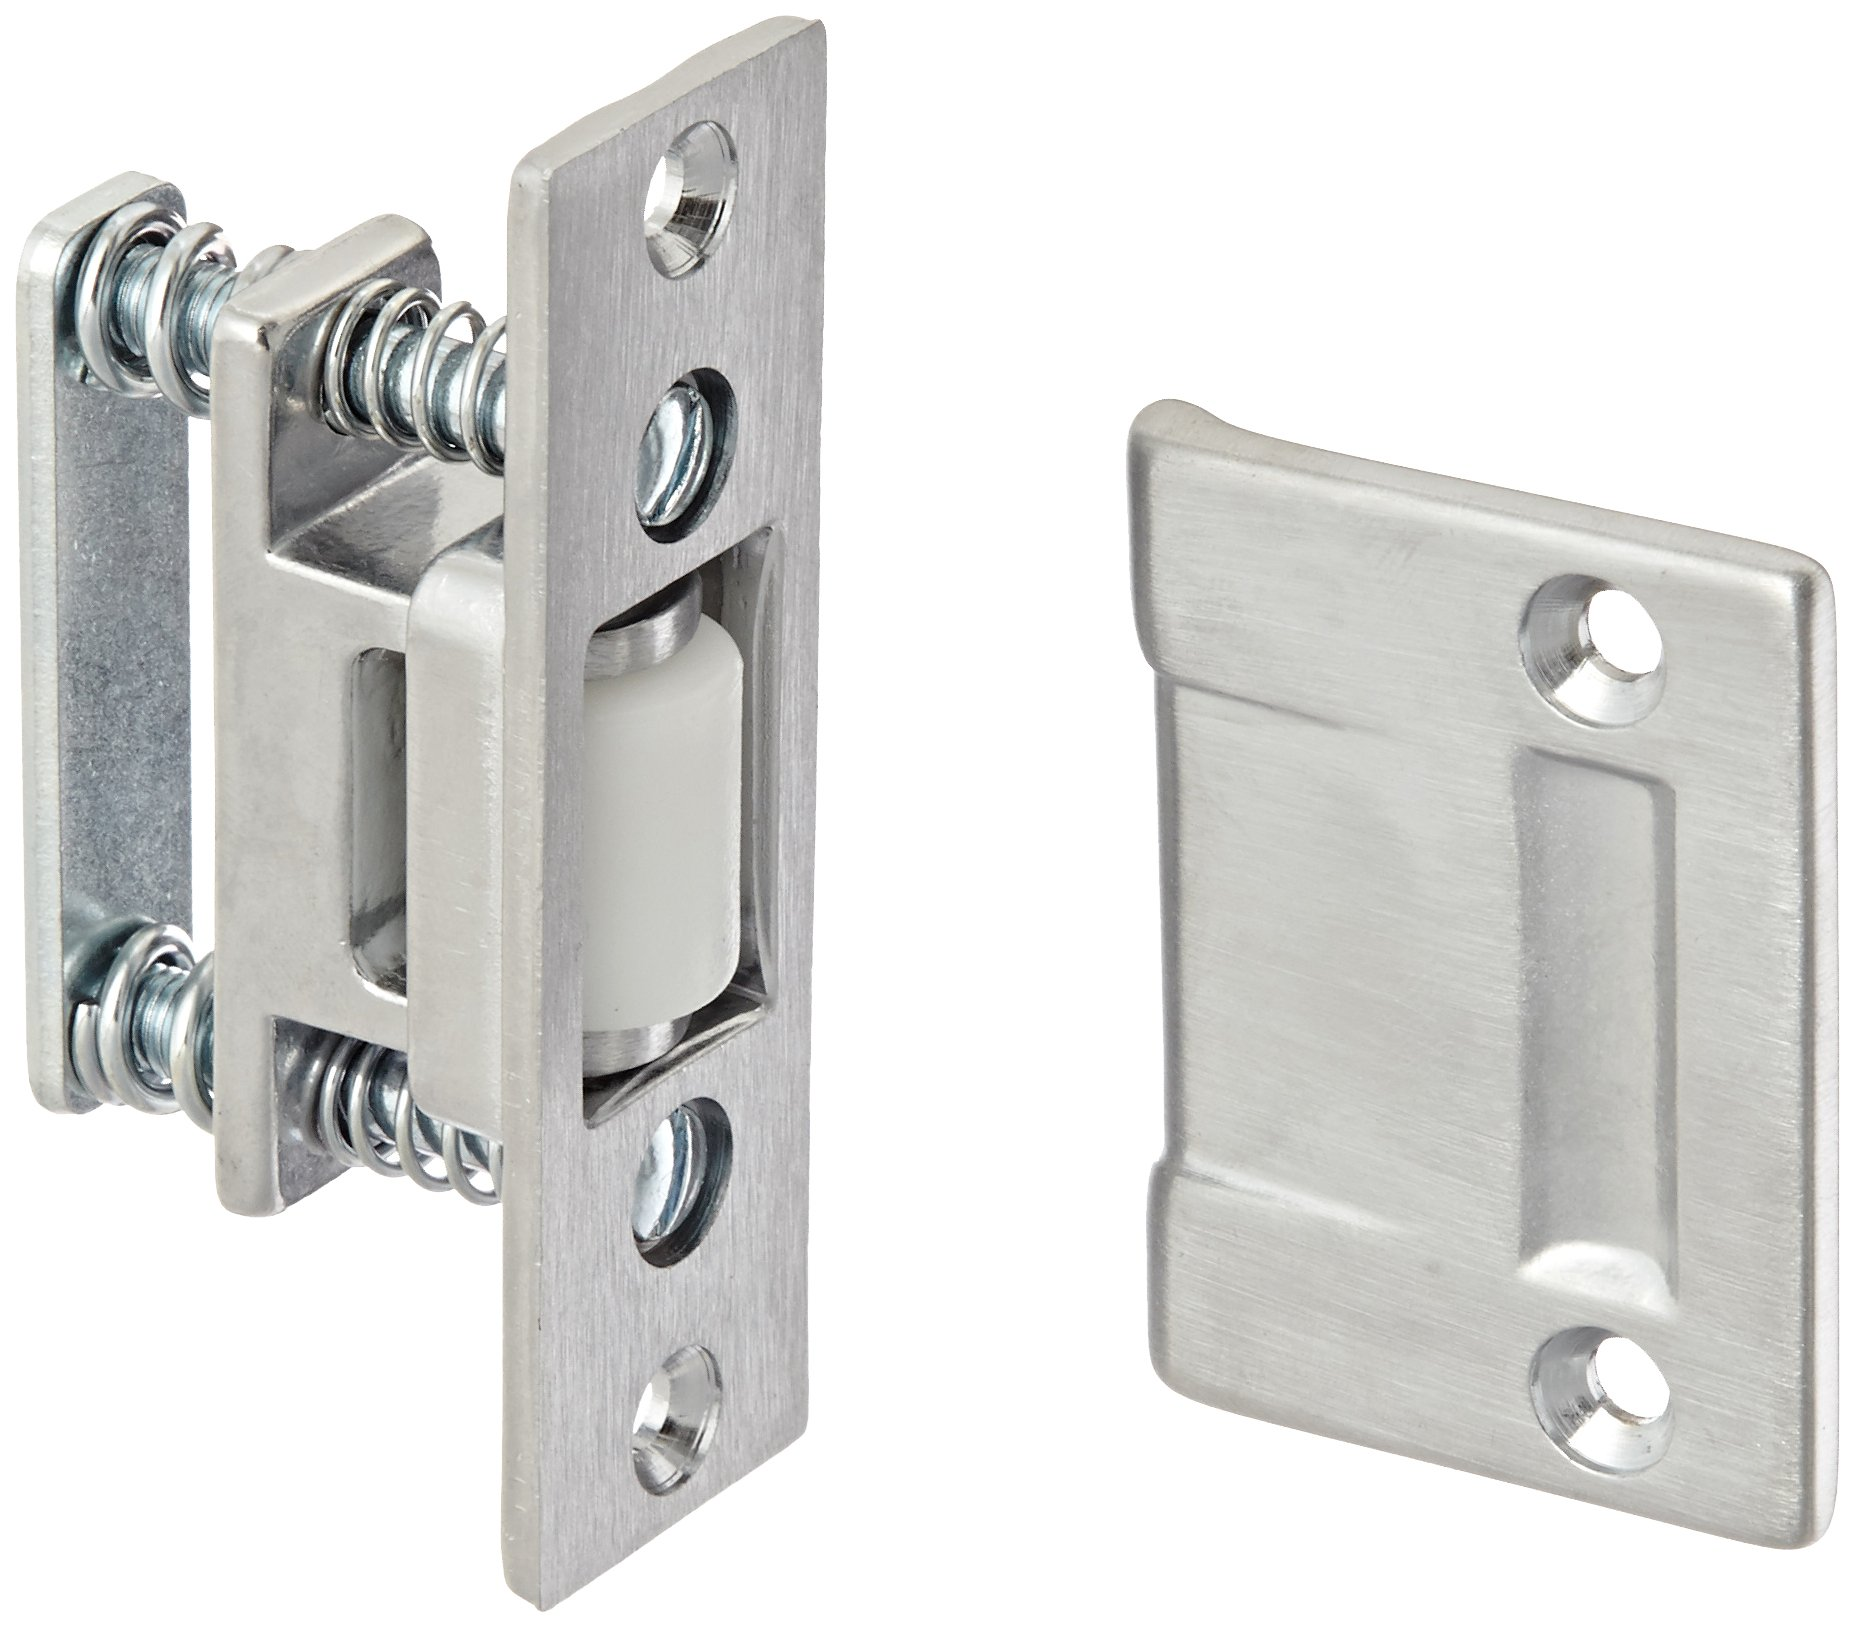 Rockwood 590.26D Brass Roller Latch with Cast Strike, 1'' Width x 3-3/8'' Length, 1-11/16'' Strike Width x 2-1/4'' Strike Length, Satin Chrome Plated Finish